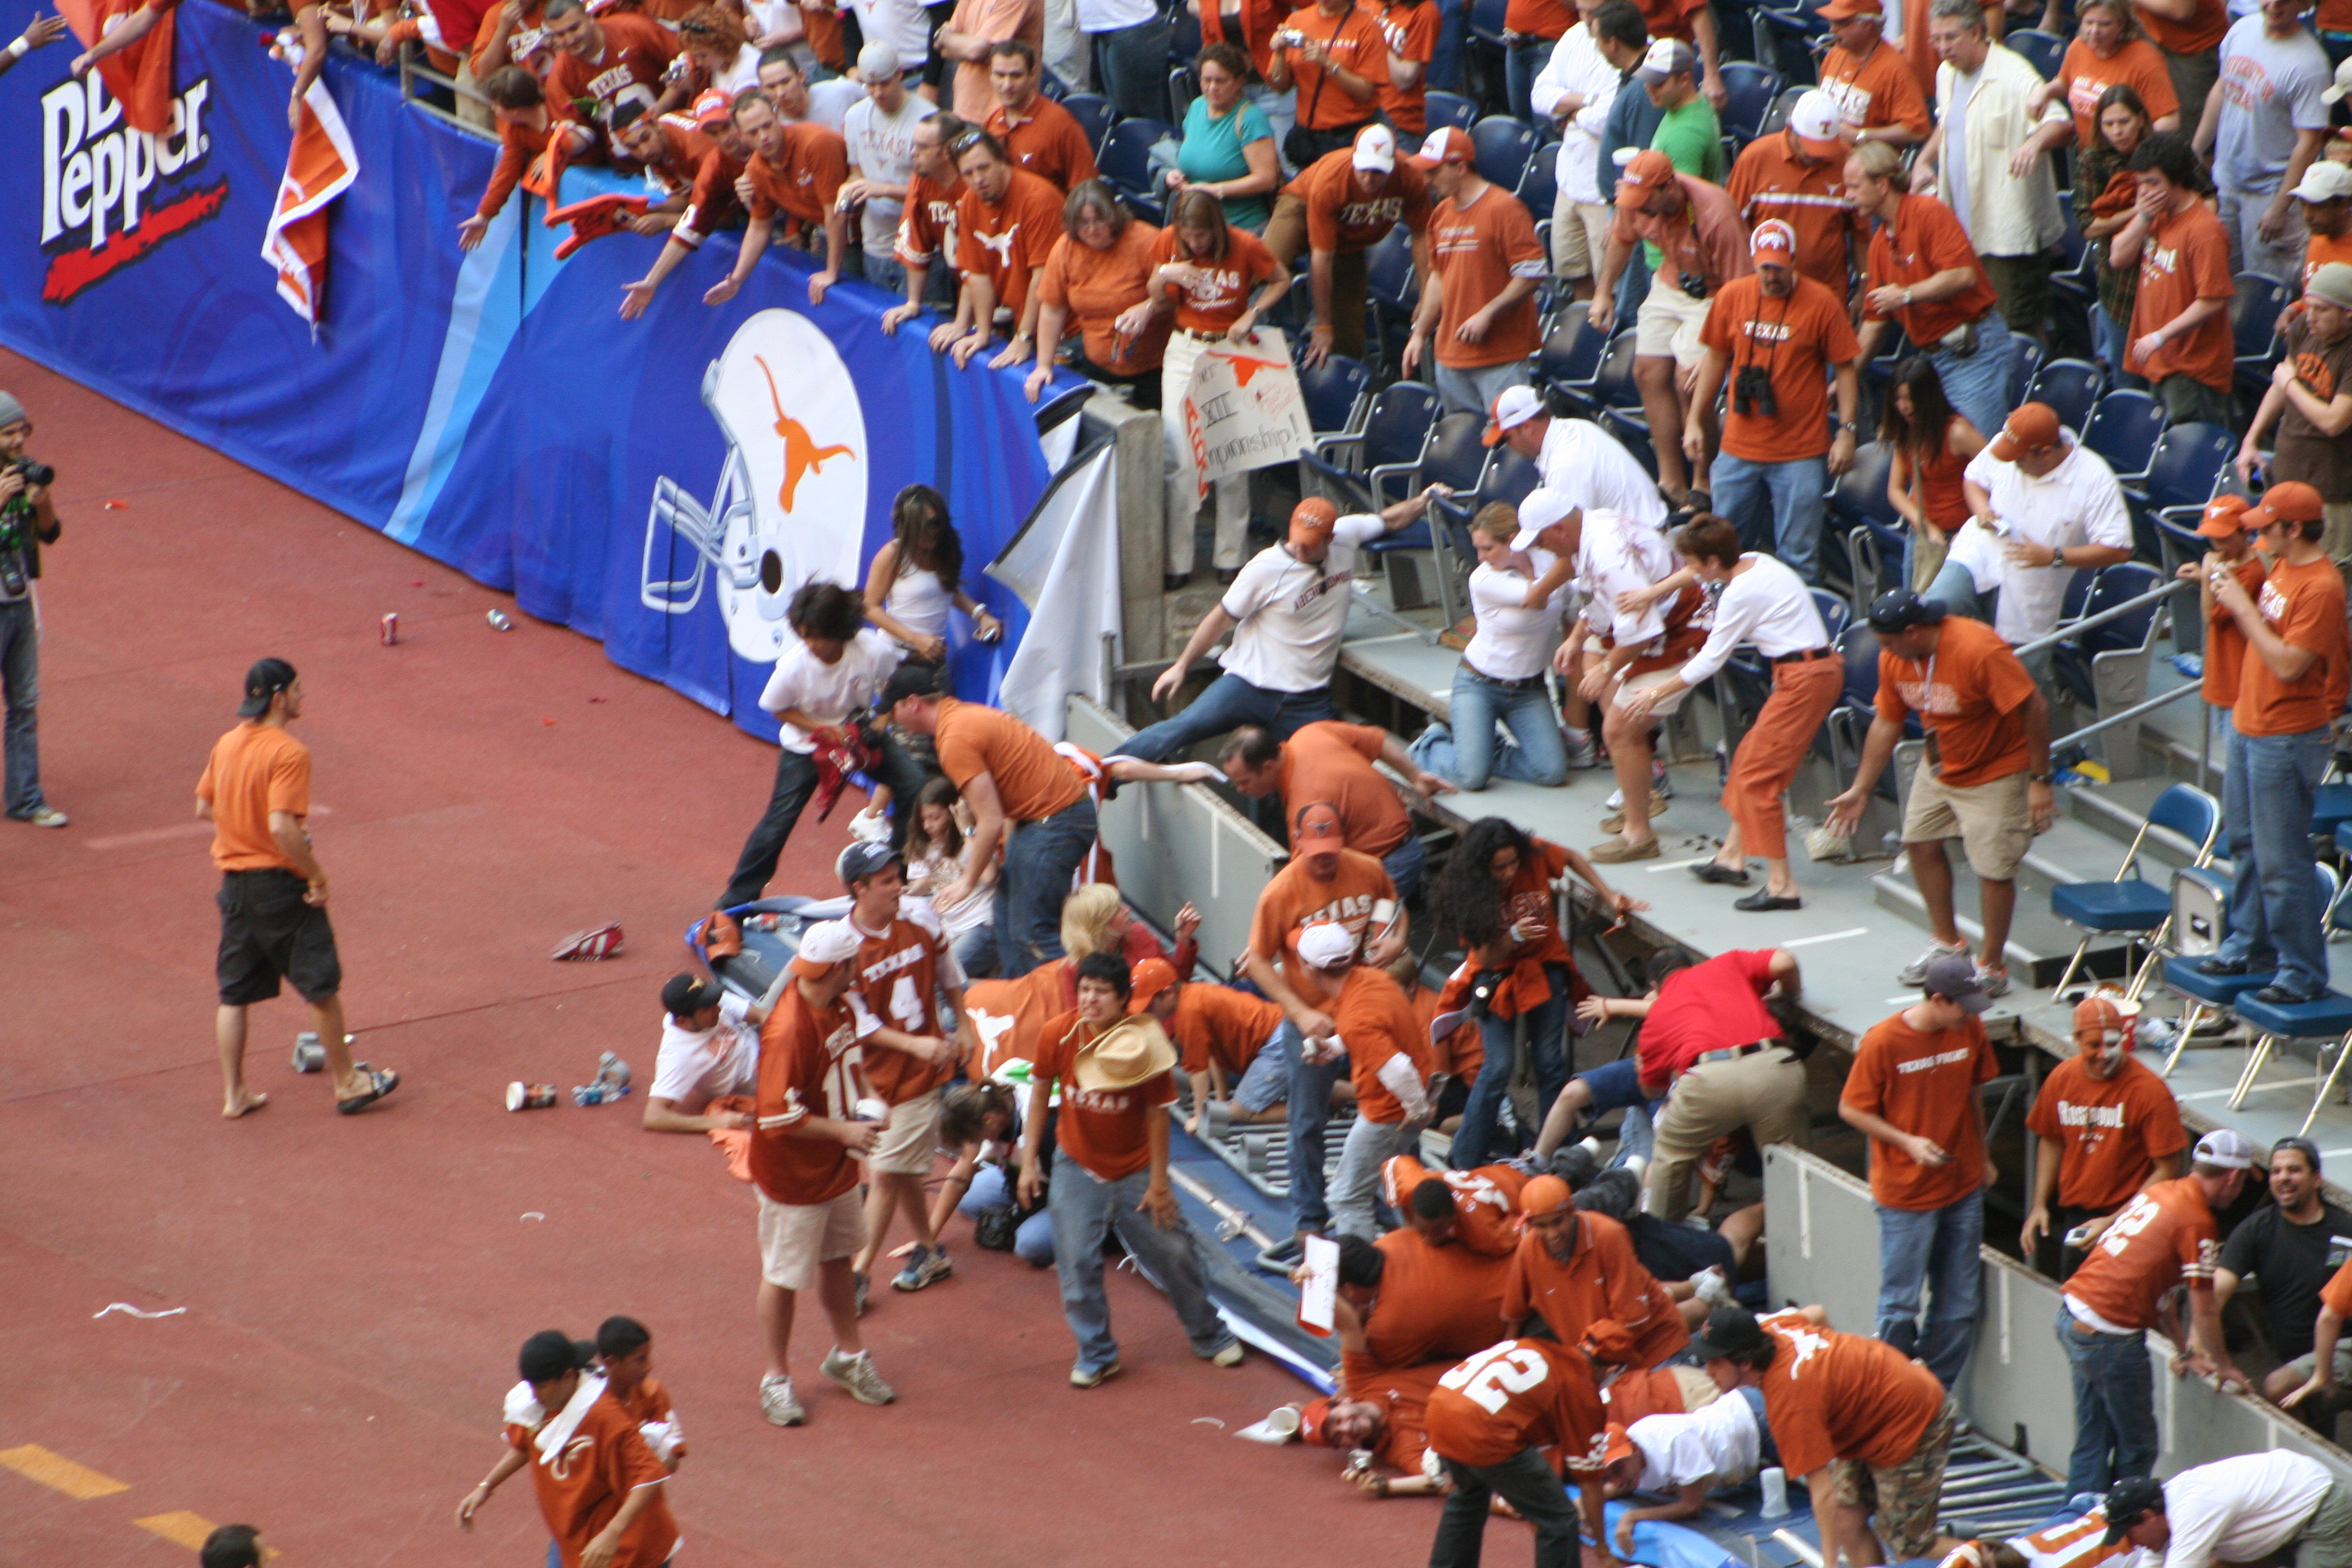 A railing accident at a college football game, spilling fans onto the side lines